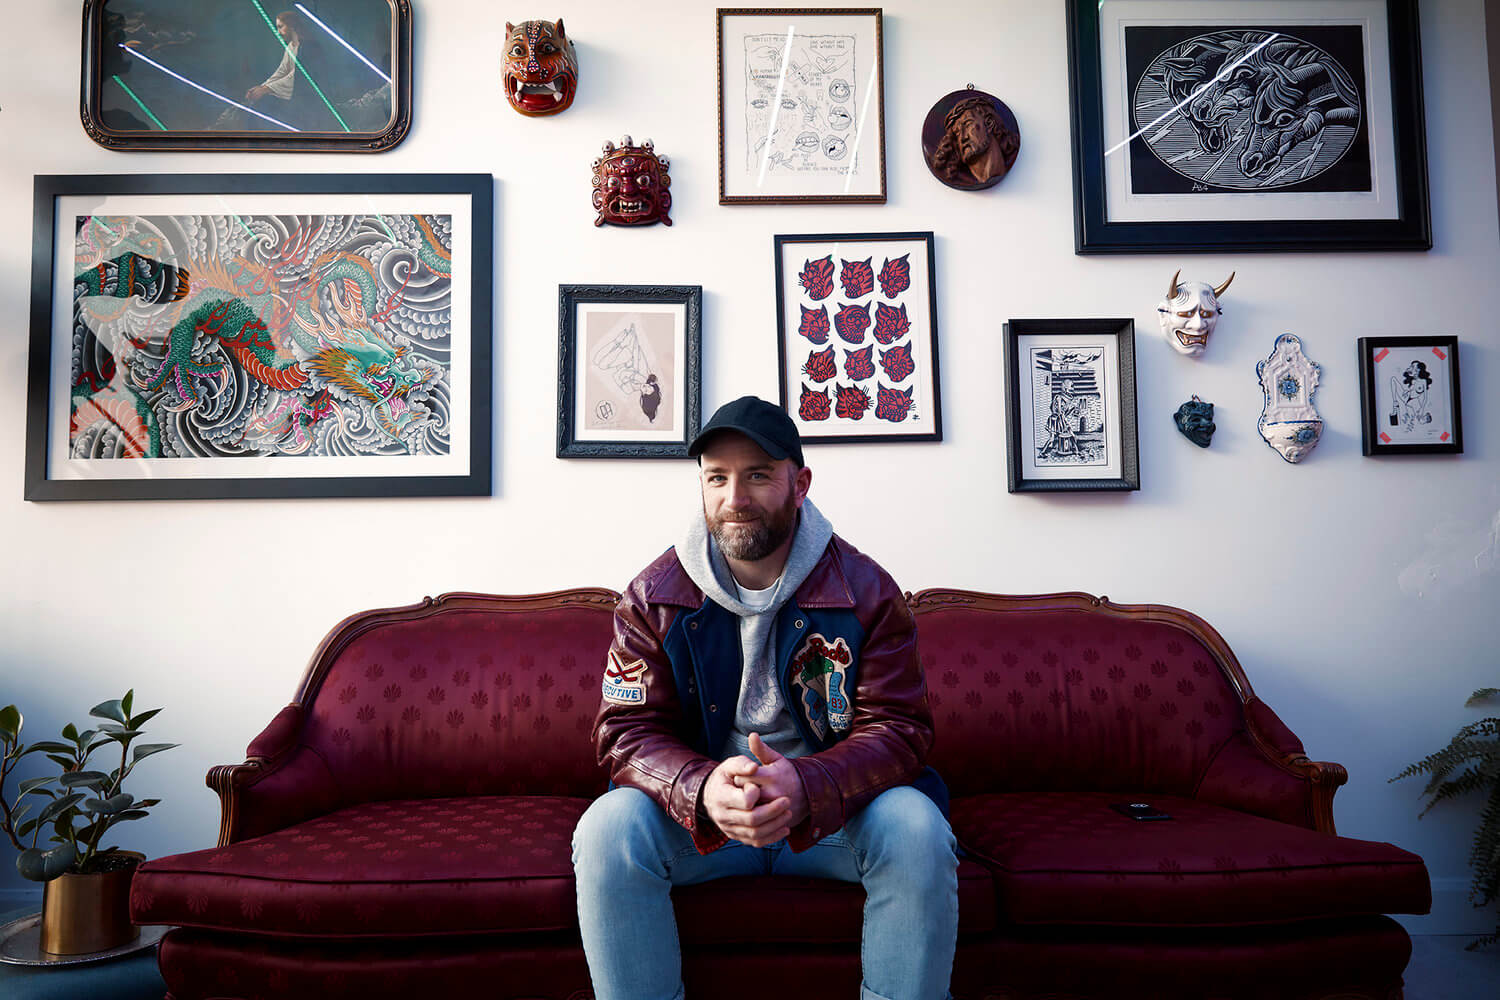 Unified Content, Max Rosenstein, portrait, portrait photography, toronto photography, toronto advertising, toronto production, production, production in toronto, toronto production companies, curt montgomery, tattoo artist, tattoo artist toronto, curt montgomery tattoos, tattoos by curt montgomery, tattoos toronto, toronto tattoo artists,